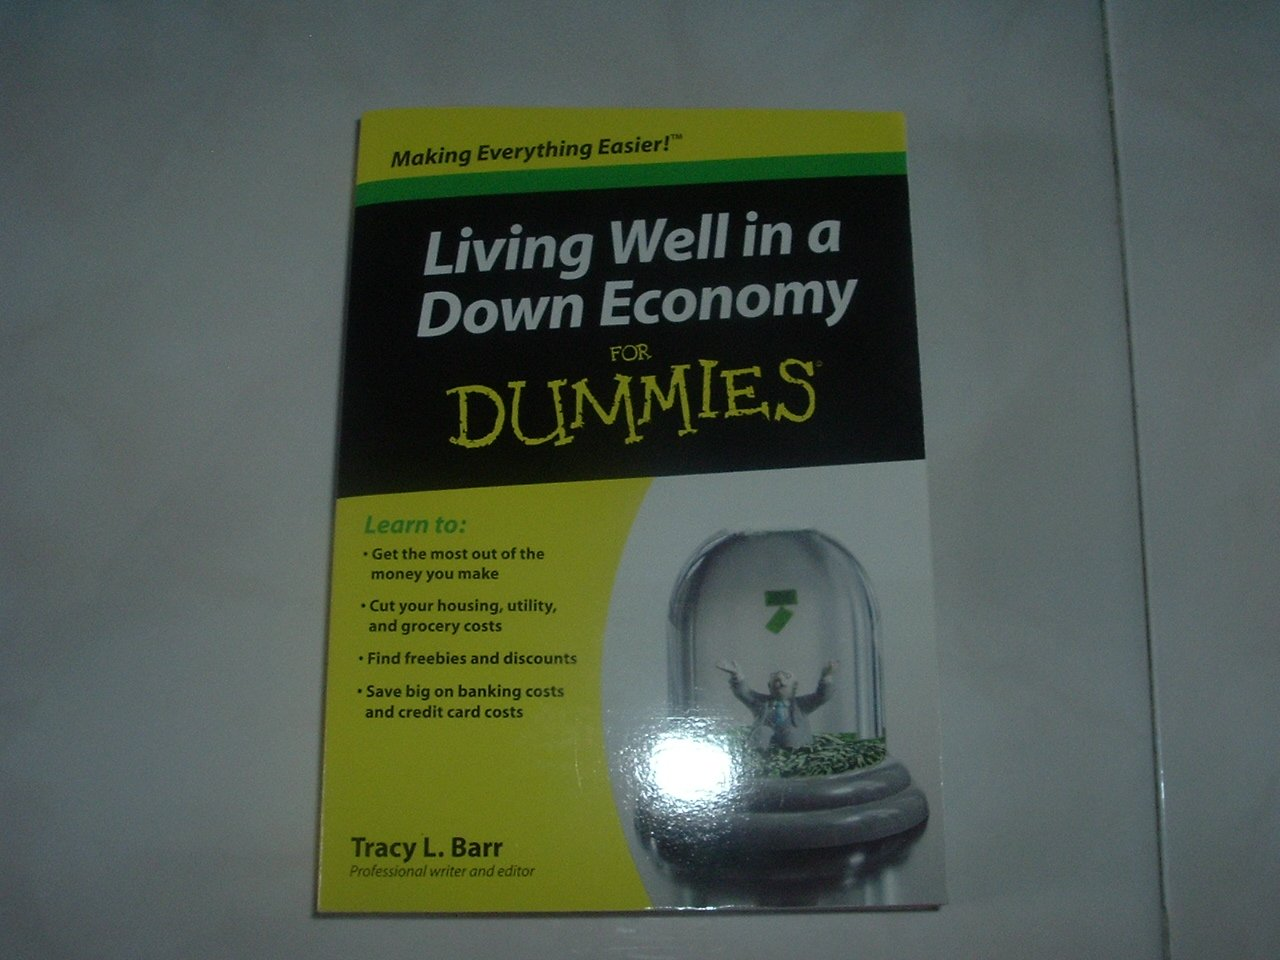 Living Well in a Down Economy for Dummies - Soft Cover